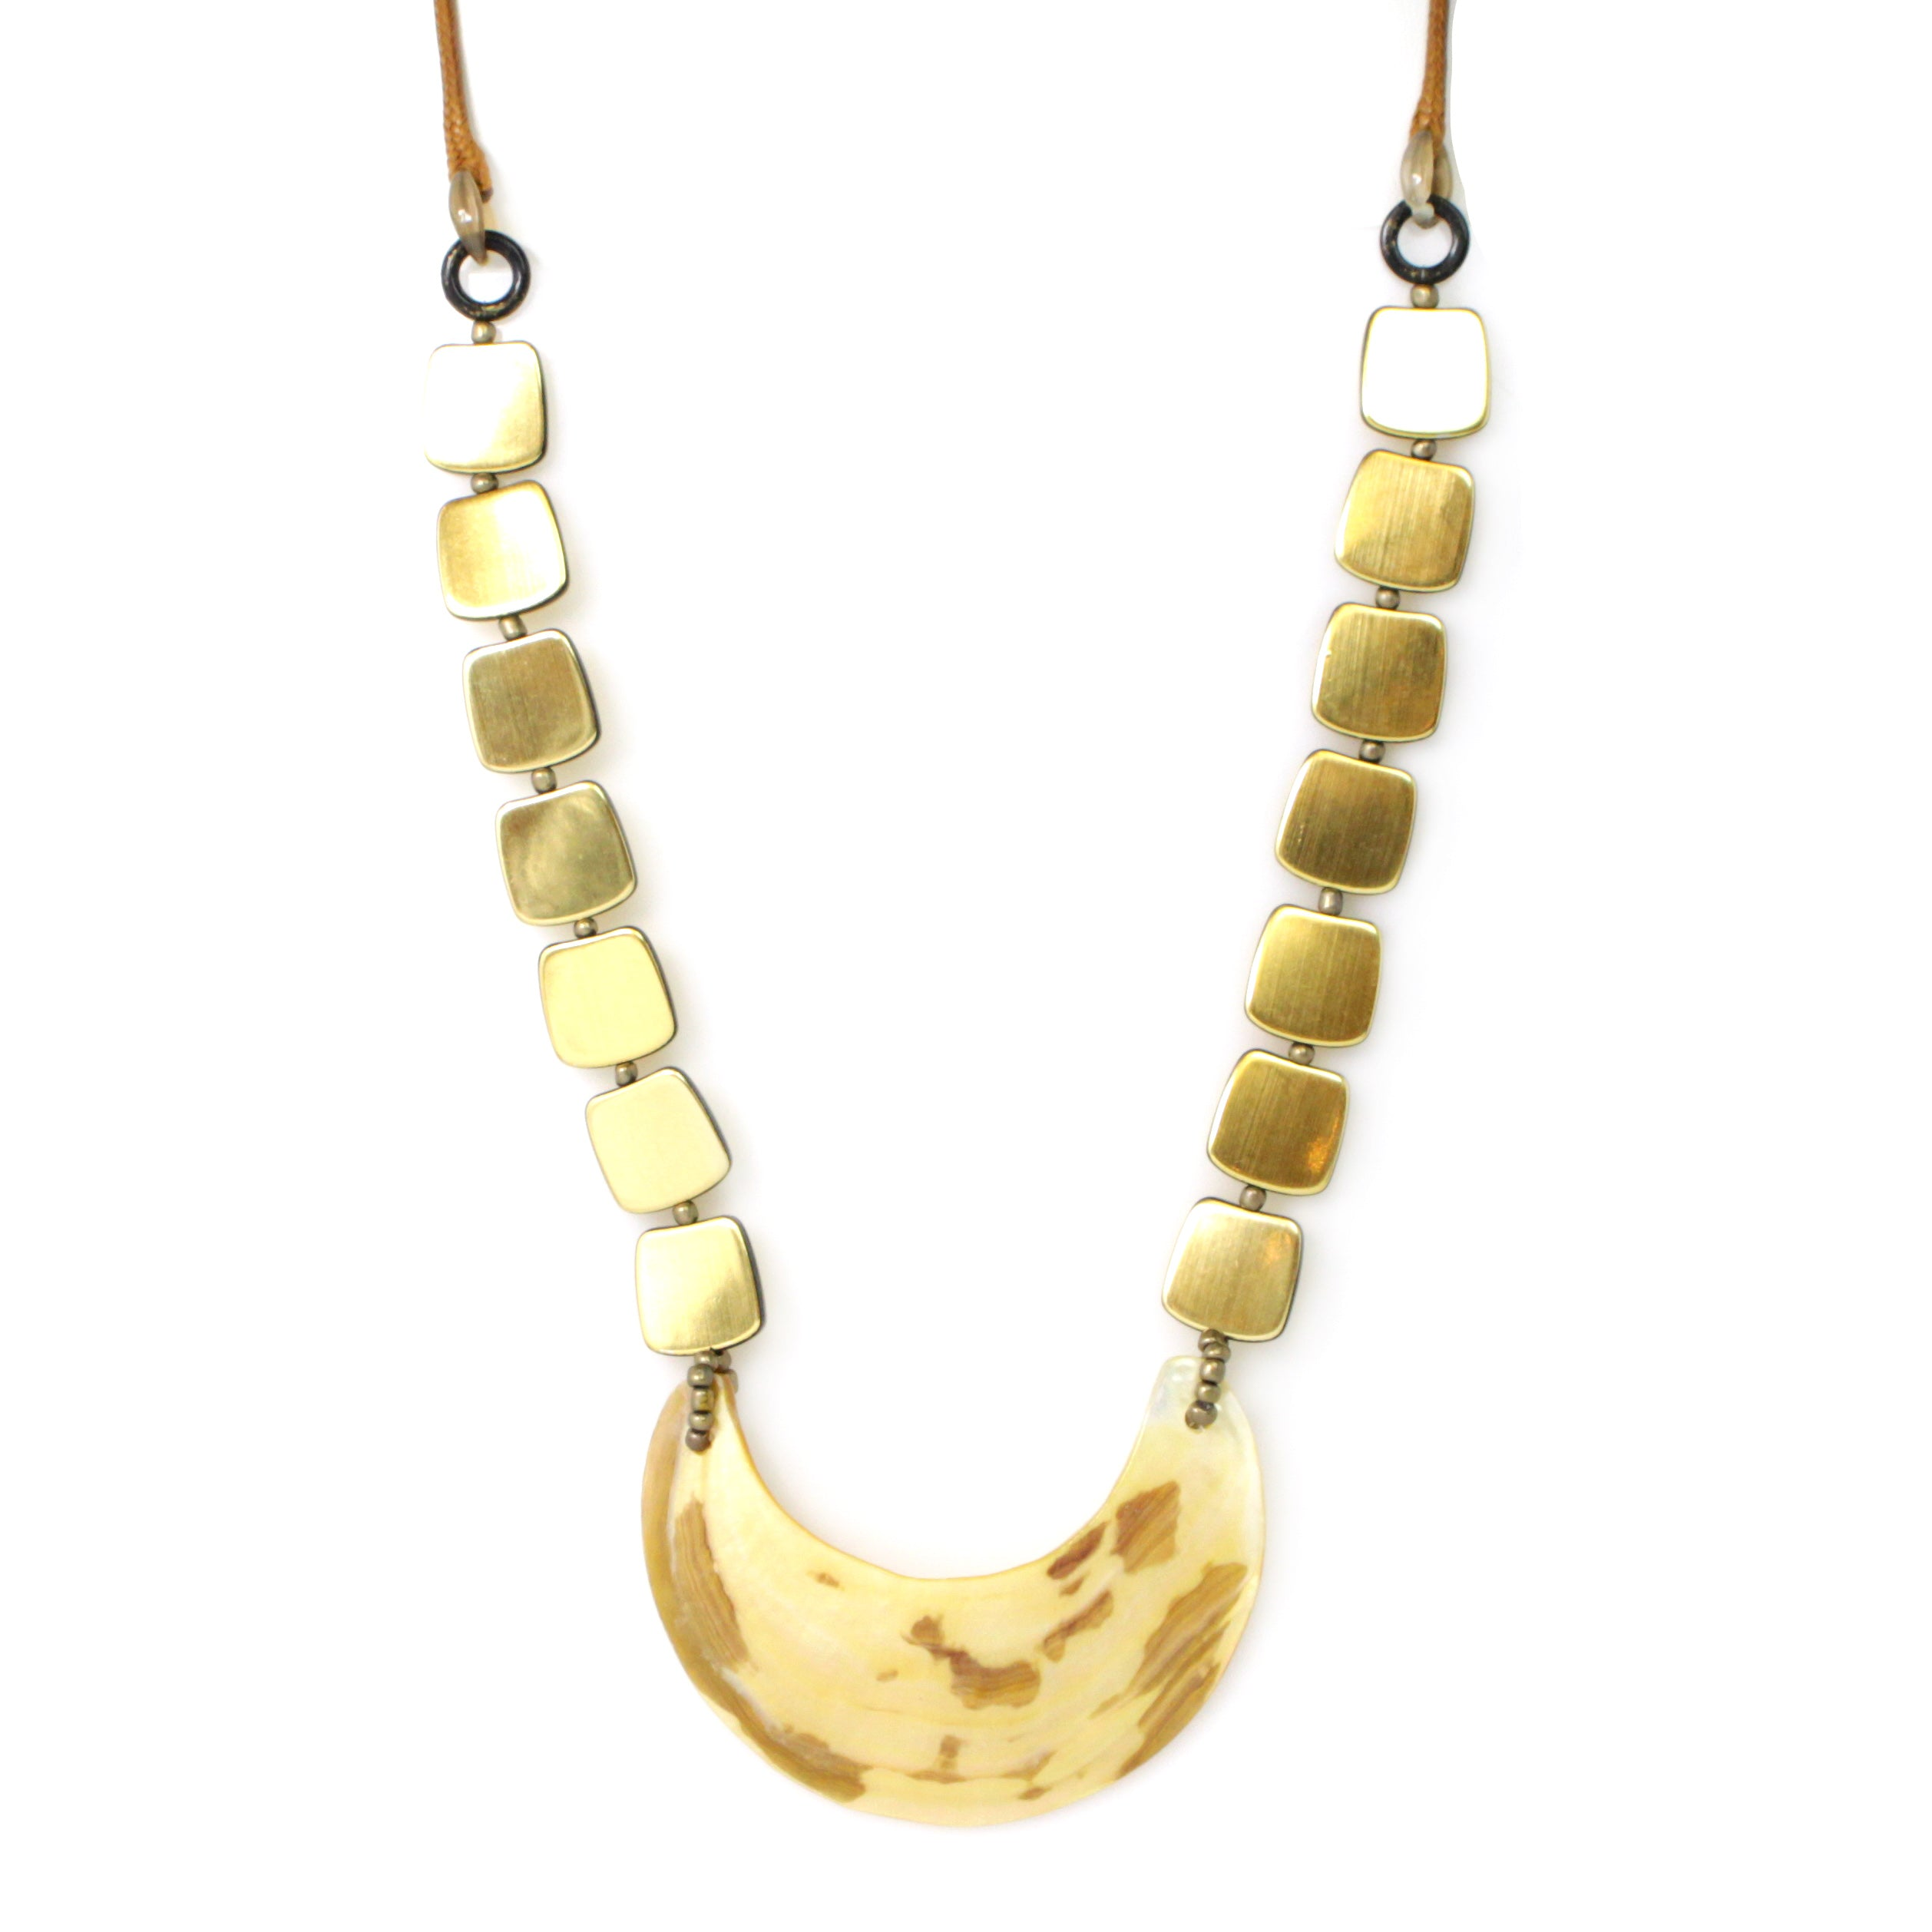 Celluloid Color Link Necklace